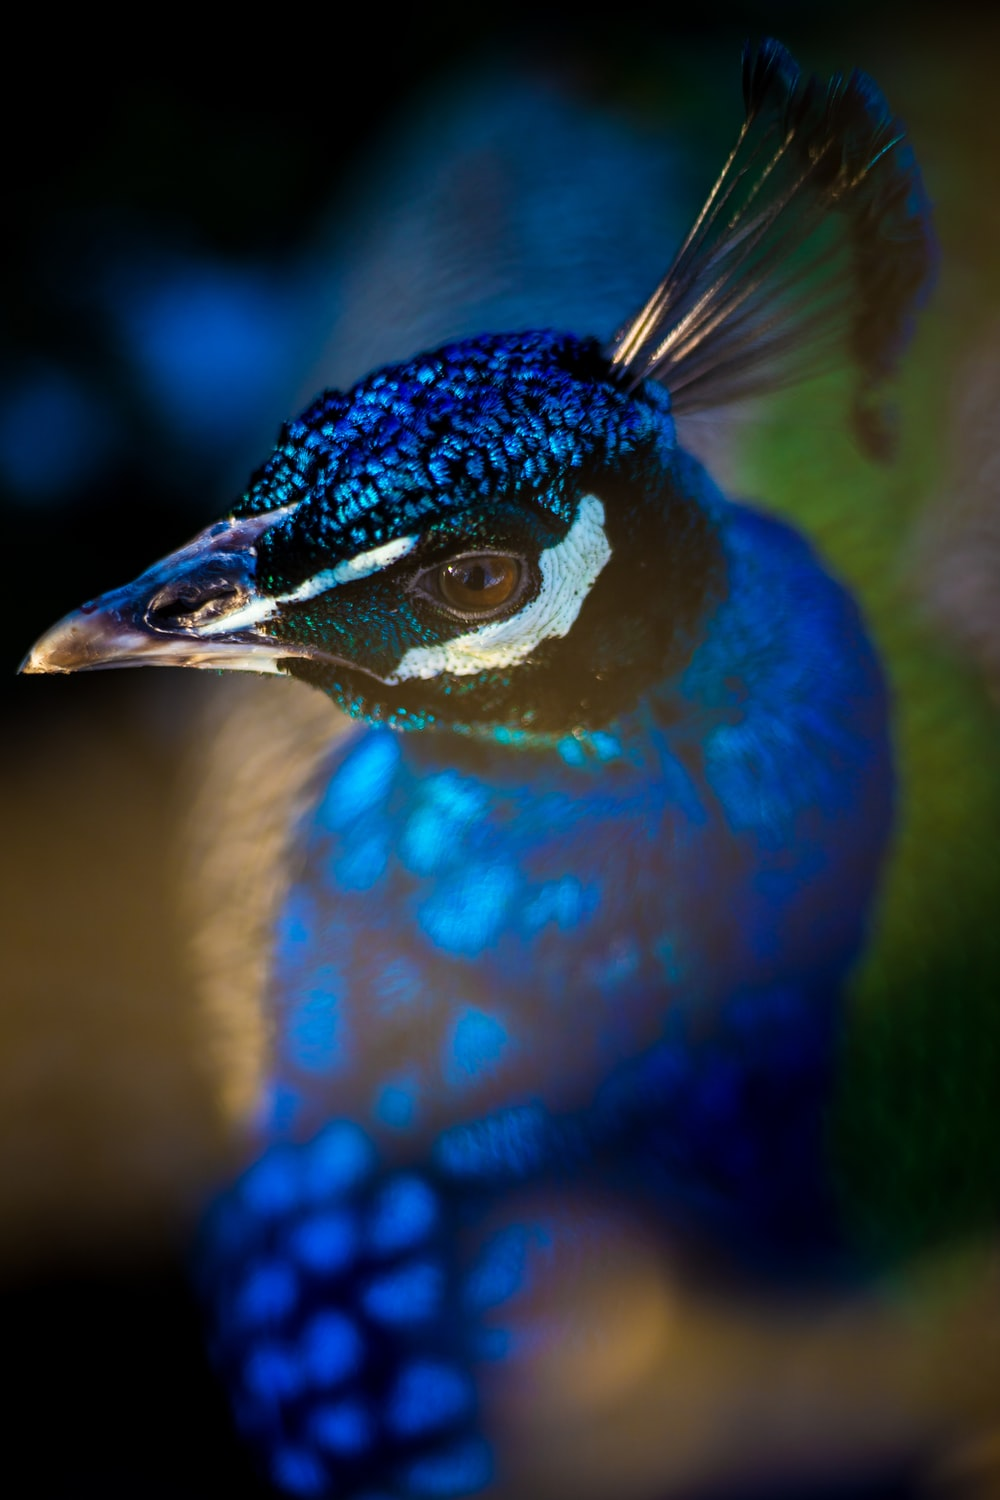 closeup photography of blue, green, and yellow peafowl